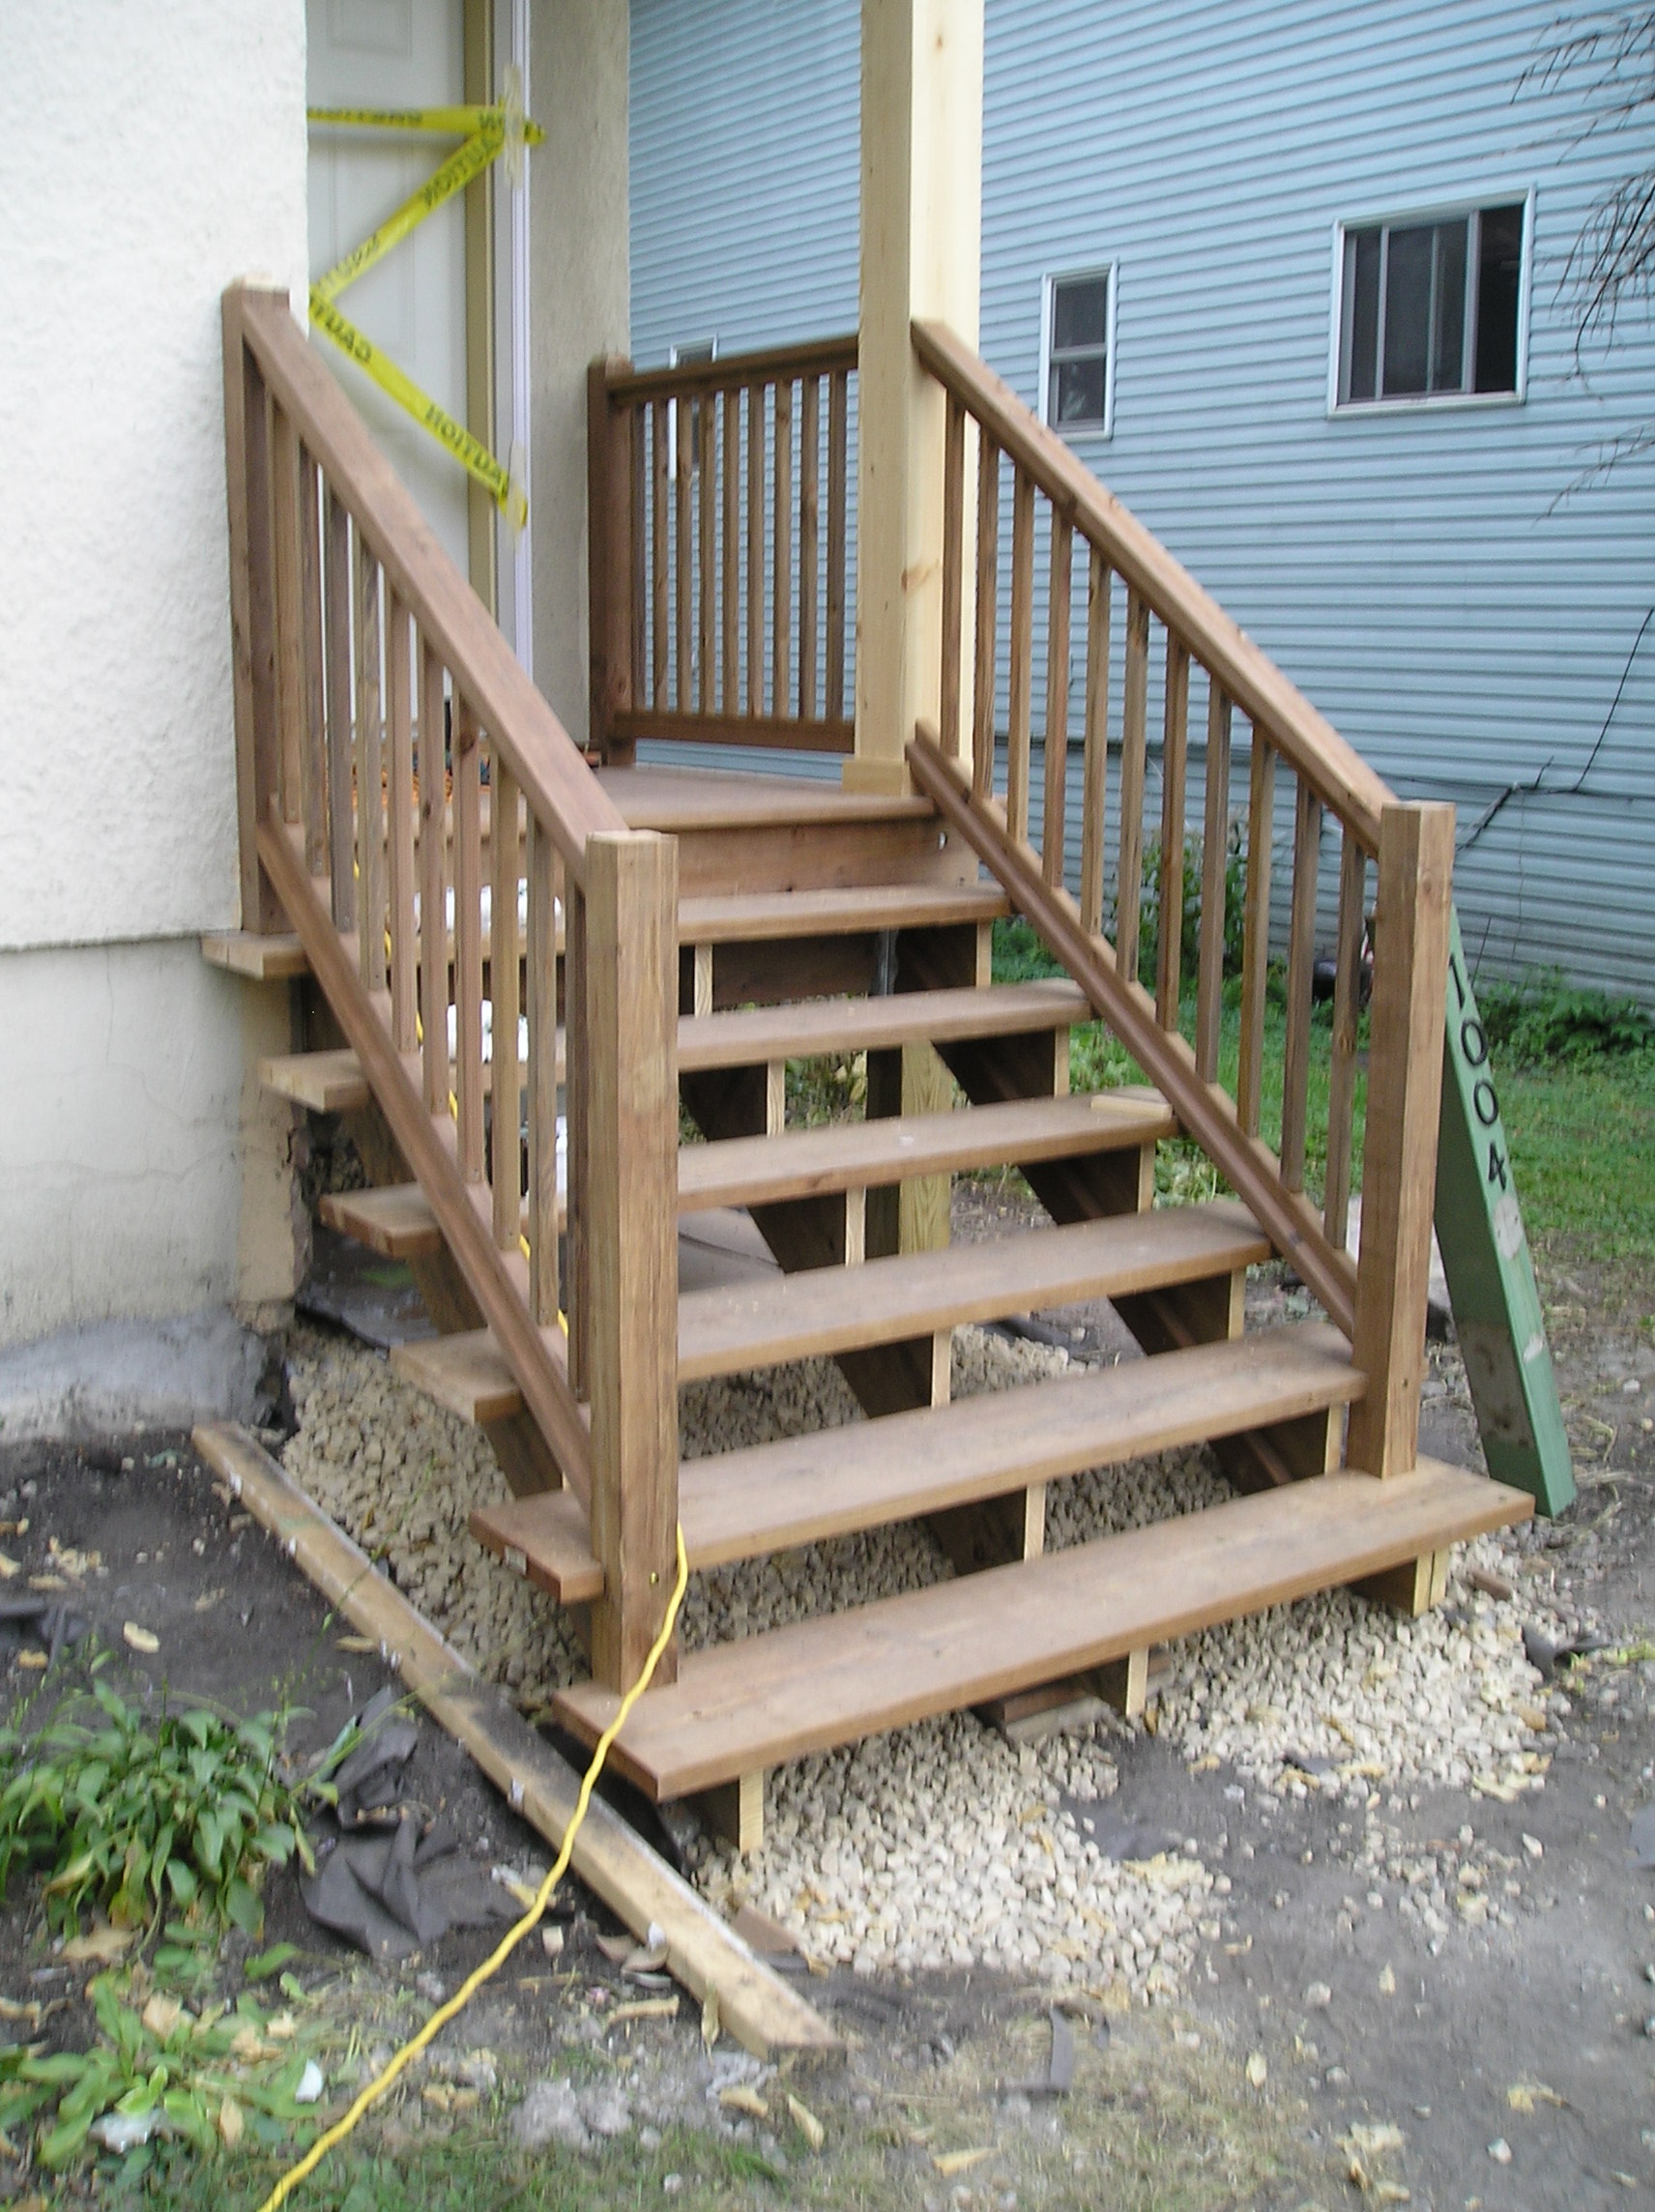 Is it ok to toe screws some newel posts?-picture.jpg